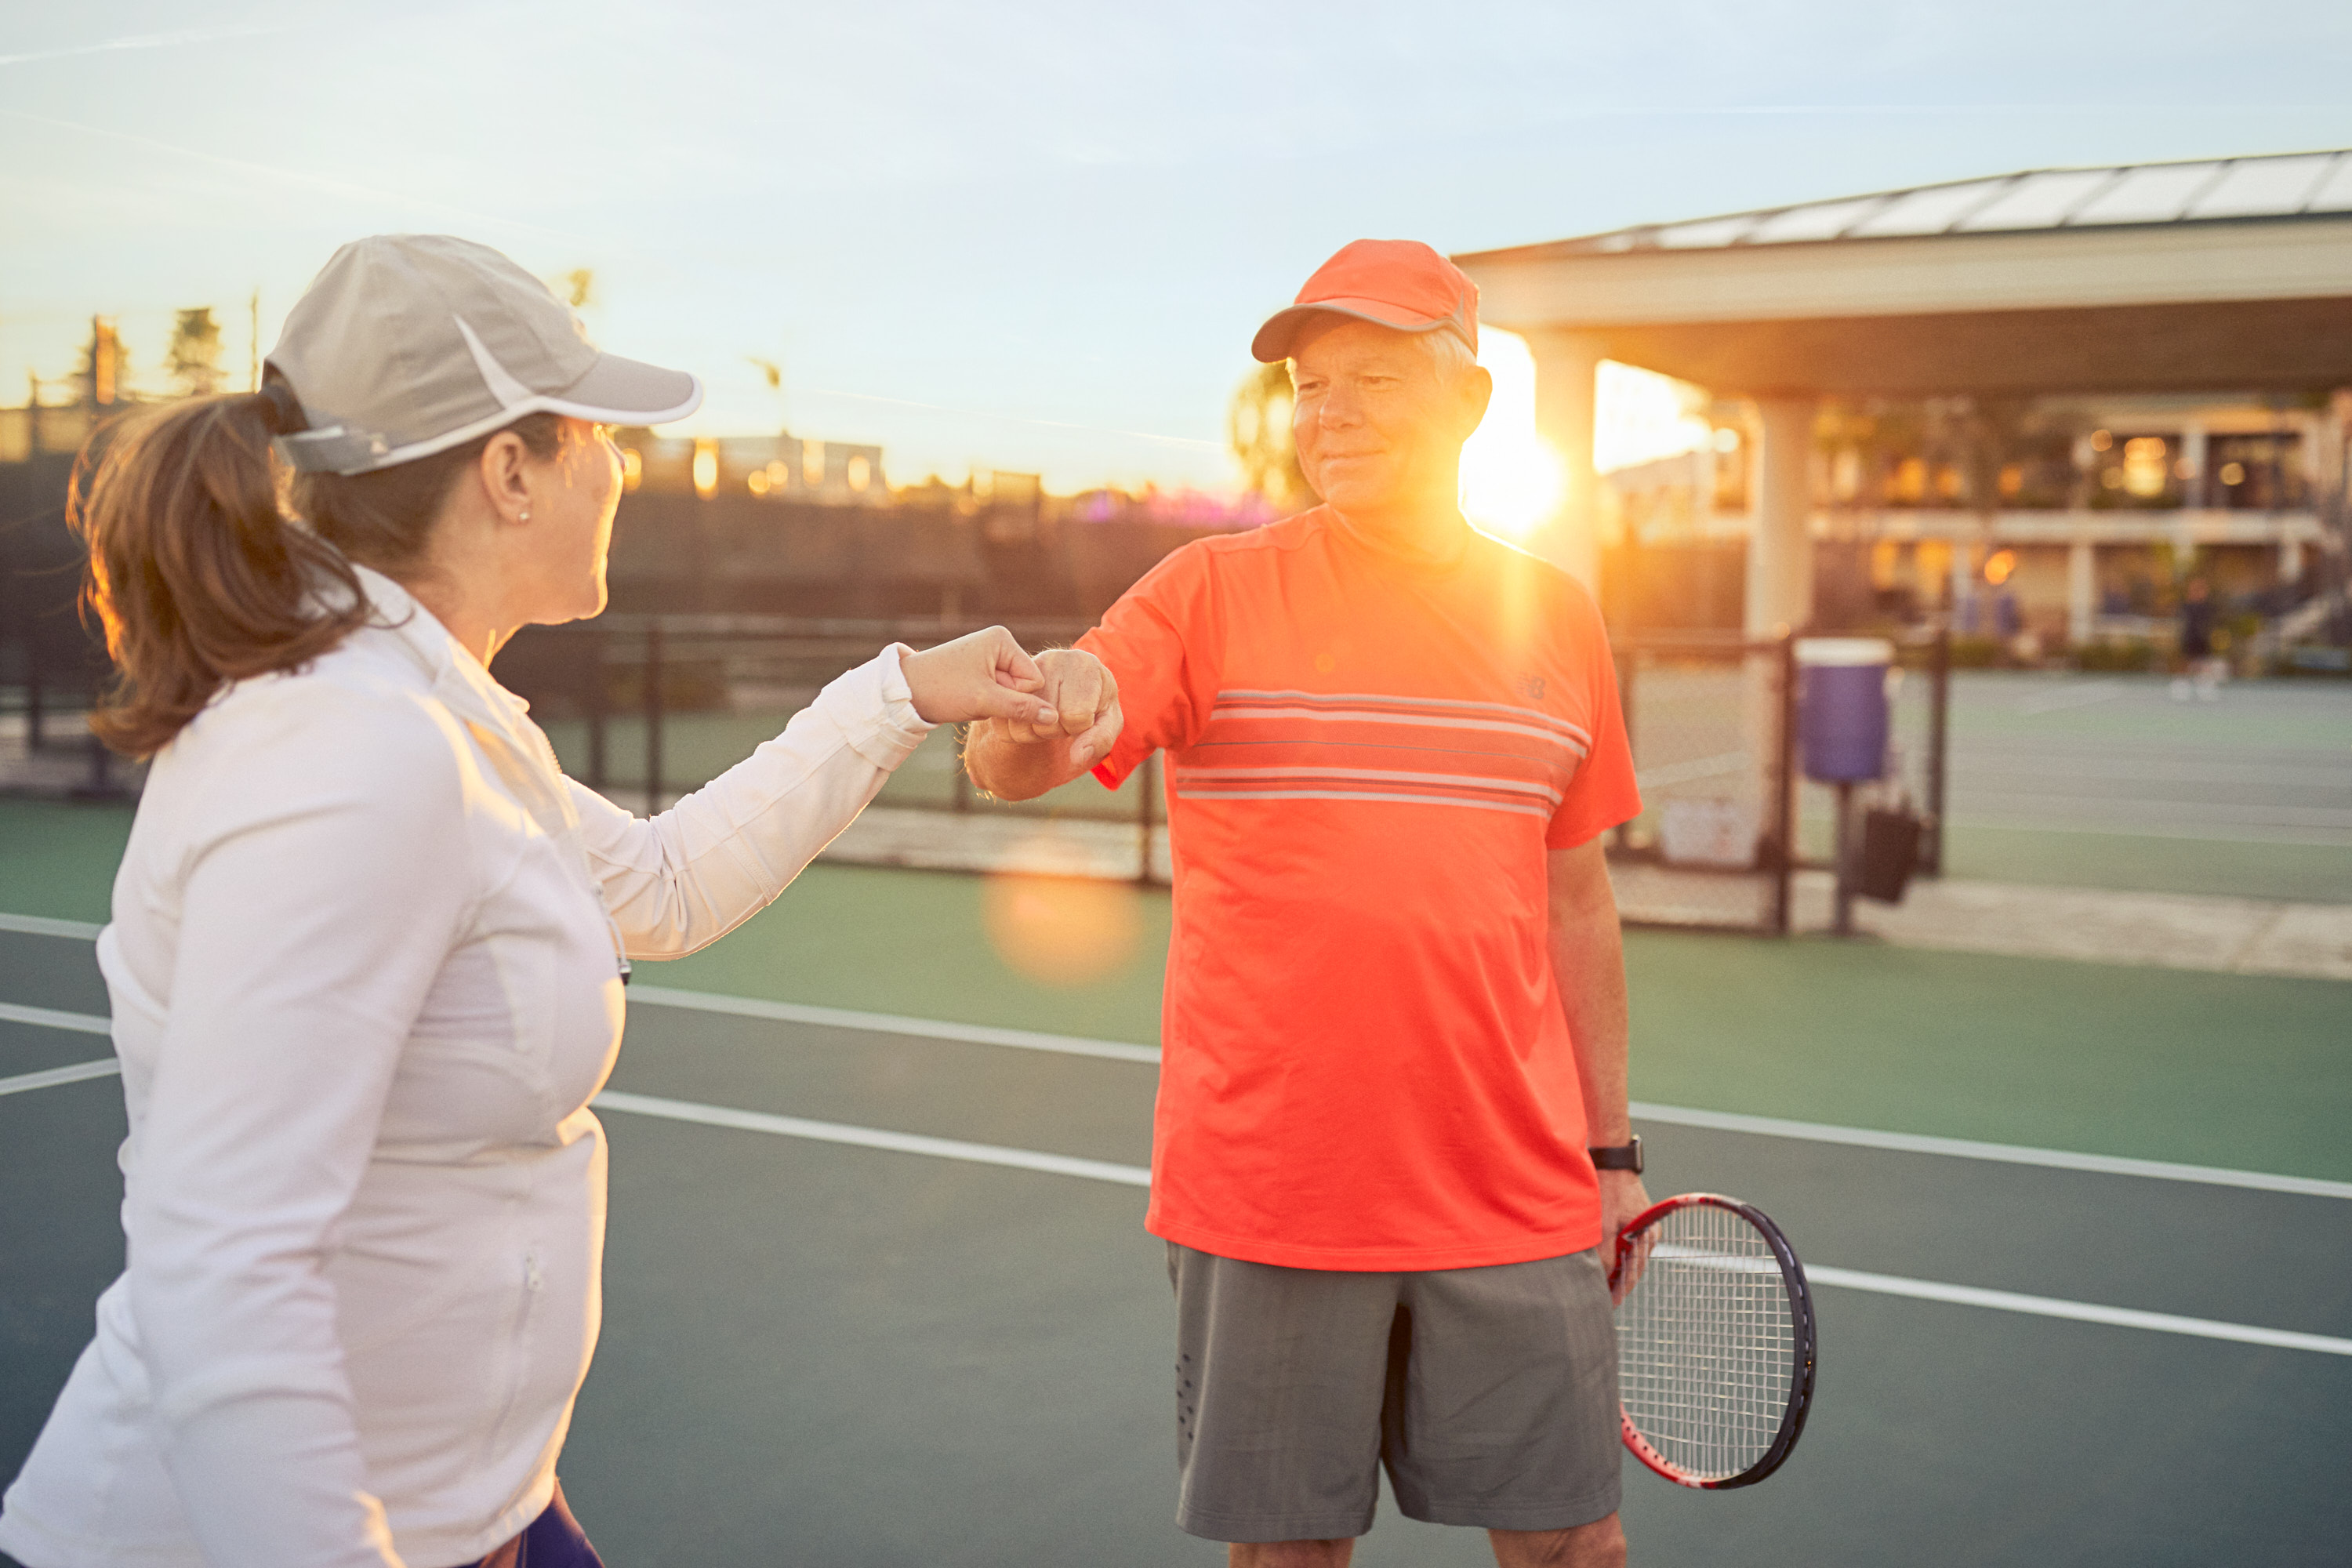 Senior Fitness | Healthcare Photography